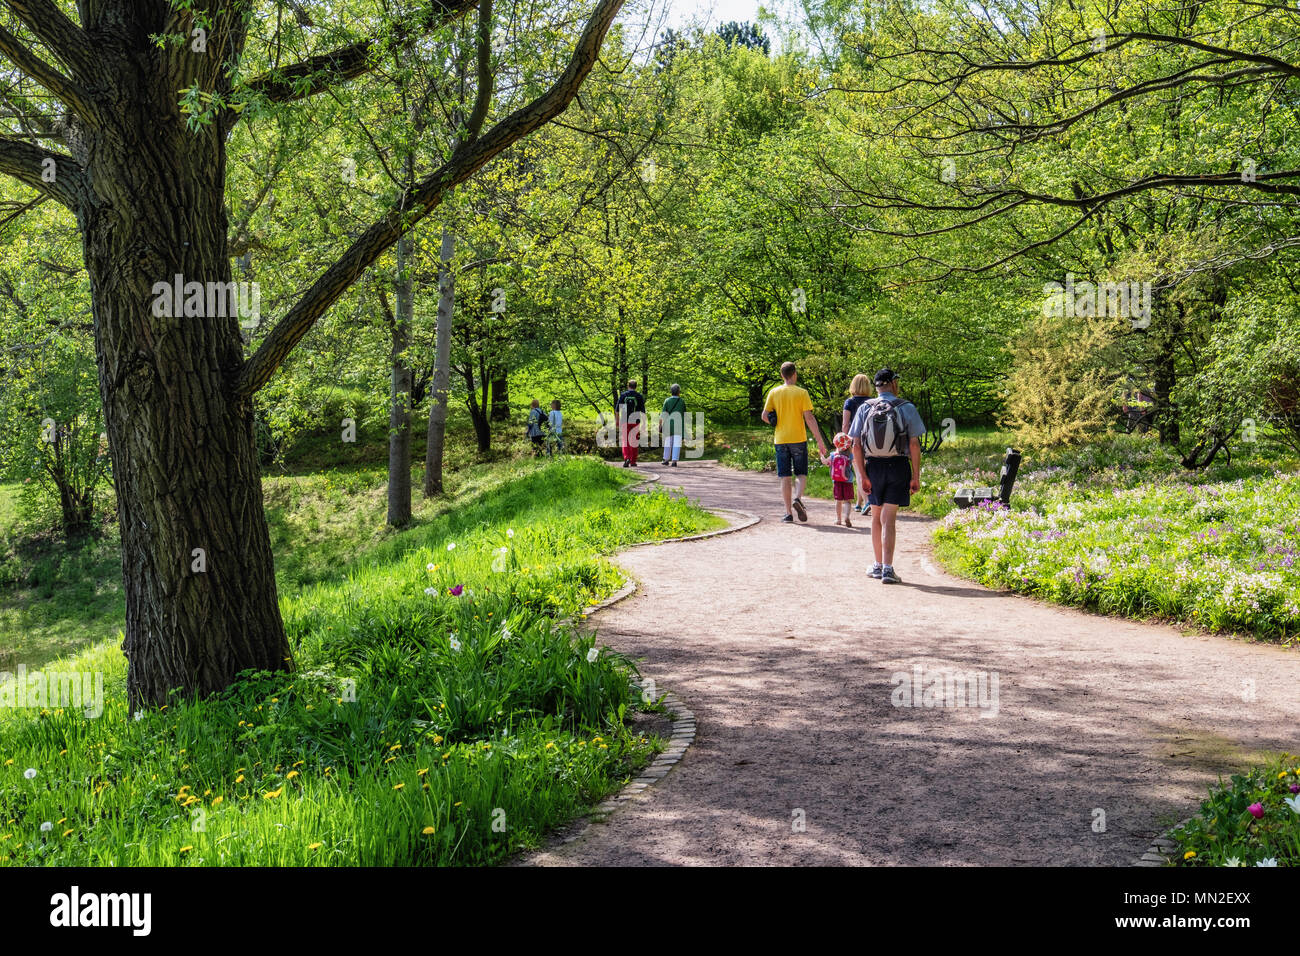 Britzer Garten, Neukölln, Berlin, Germany. 2018.Young couples, child and elderly man walking along path under trees with fresh spring foliage.         - Stock Image